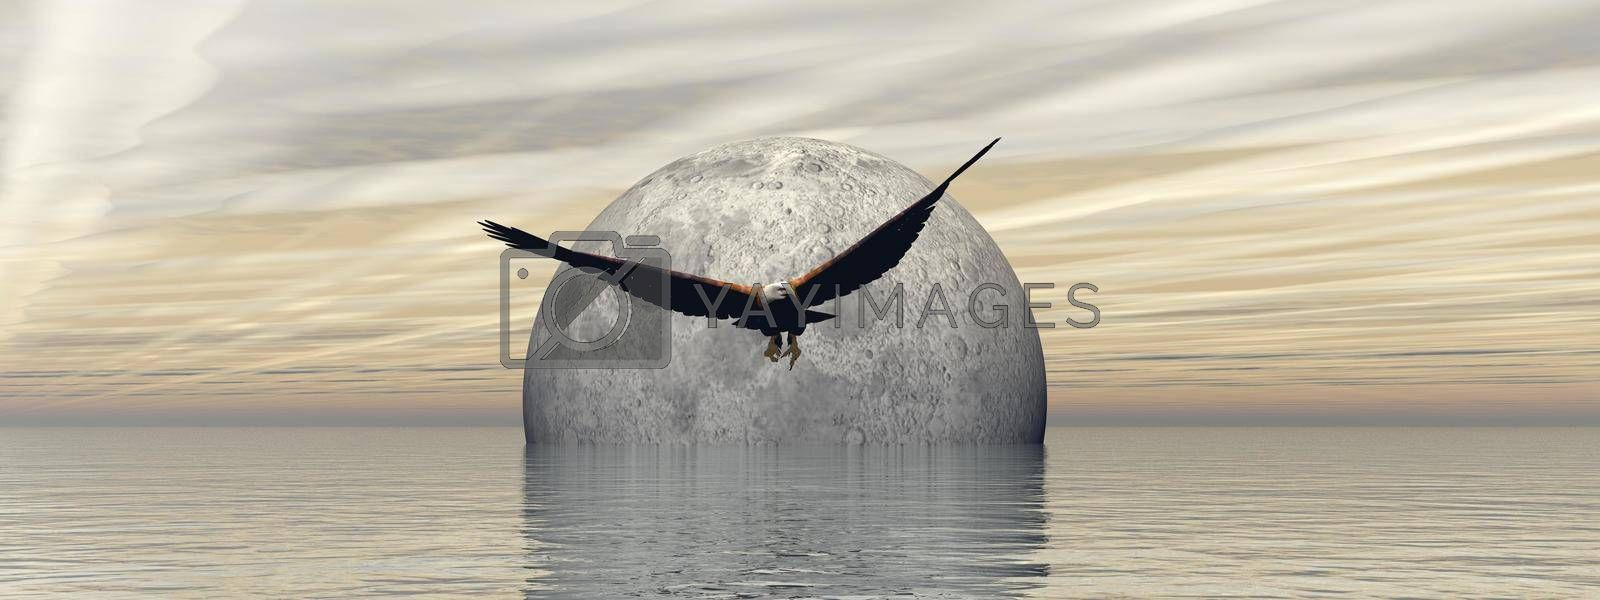 flying an eagle with a beautiful full moon landscape - 3d rendering by mariephotos